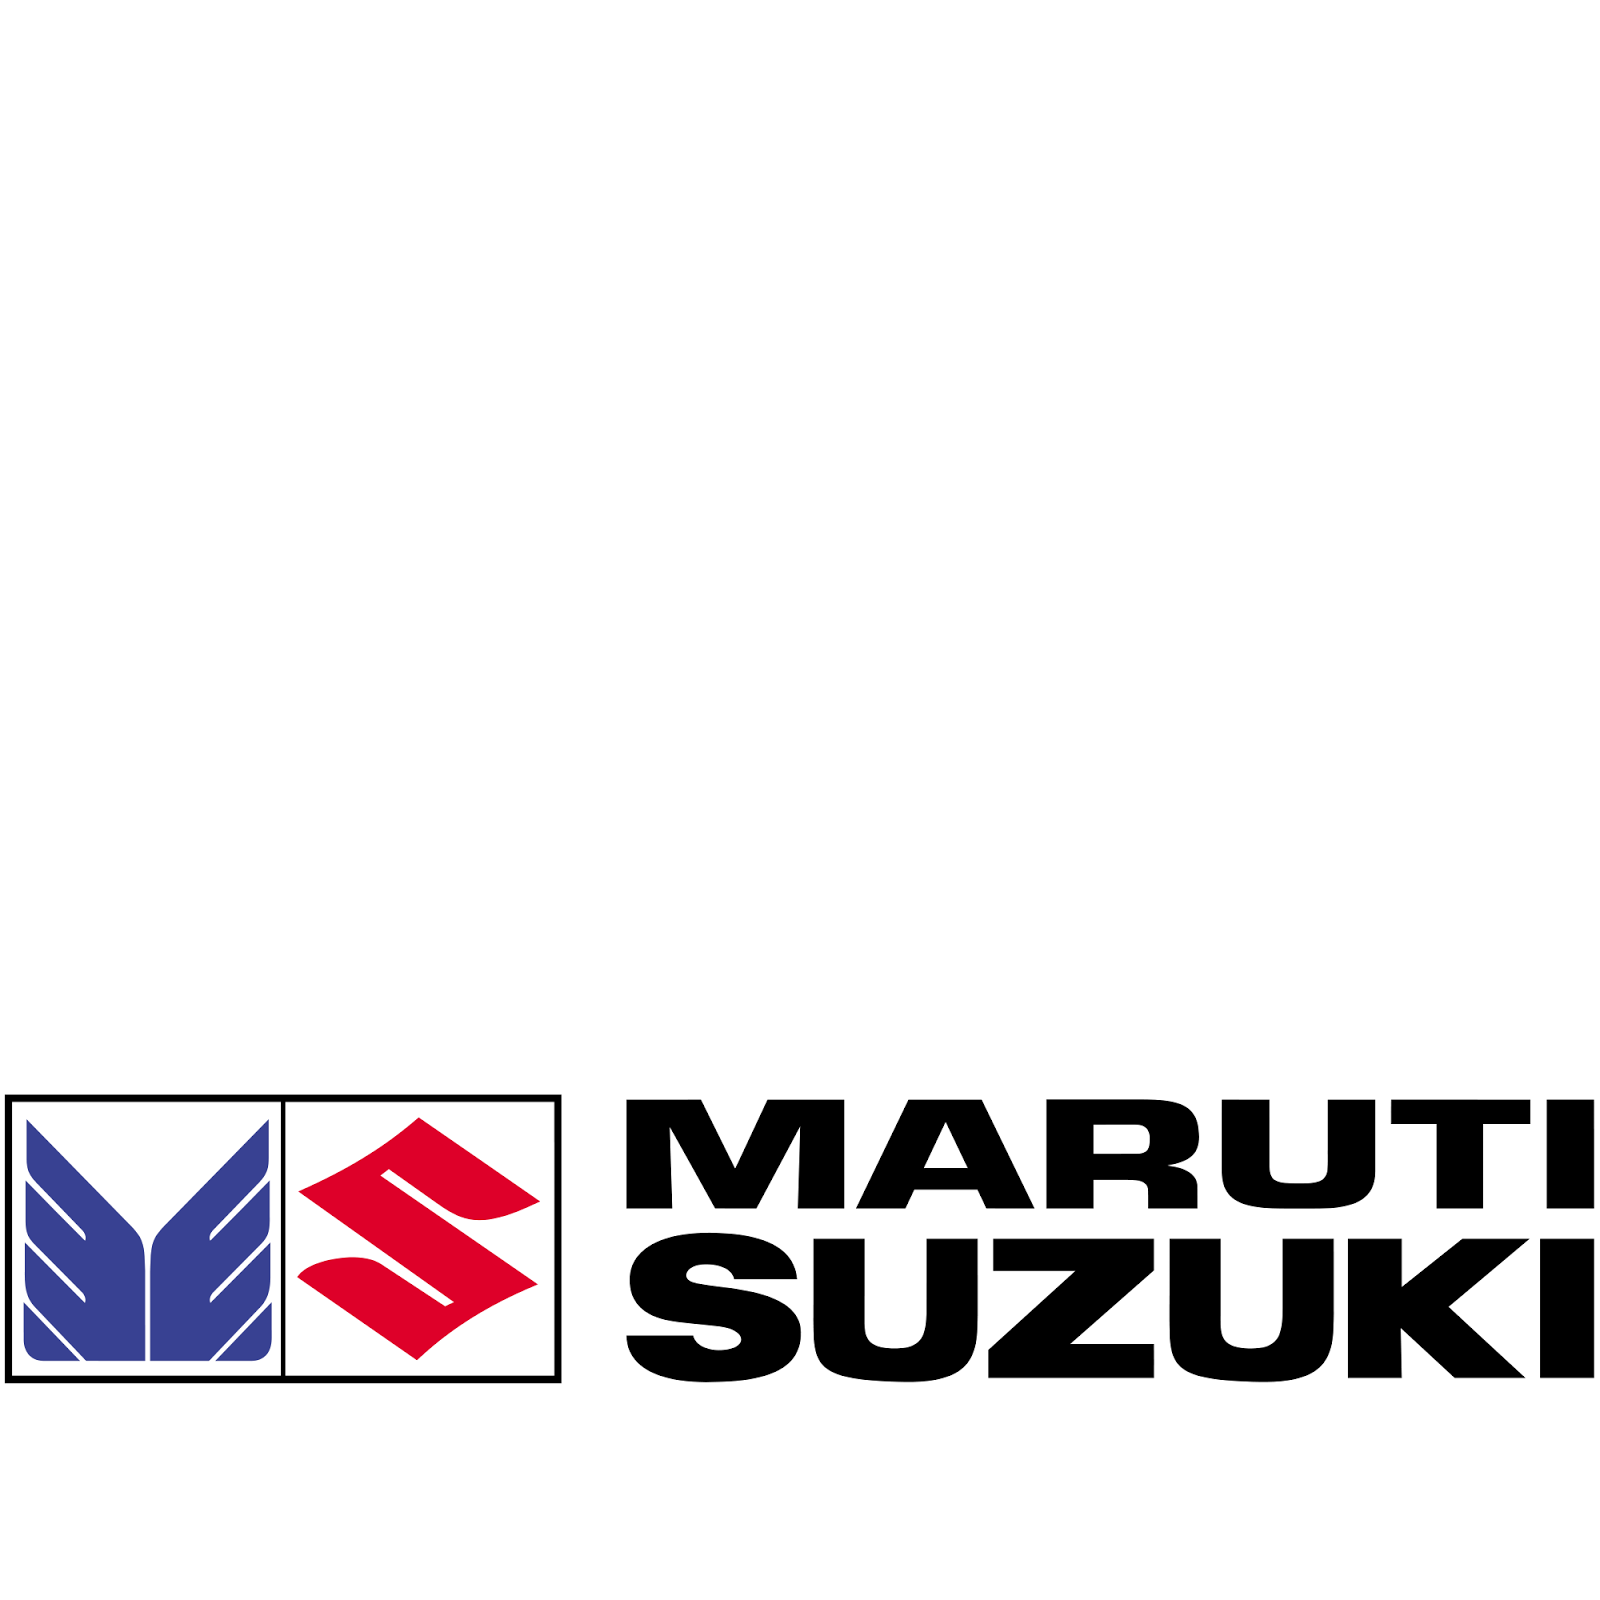 maruti suzuki india limited Maruti suzuki india limited (msil), formerly known as maruti udyog limited, a subsidiary of suzuki motor corporation of japan, is india's largest passenger car company, accounting for over 50 per cent of the domestic car market.